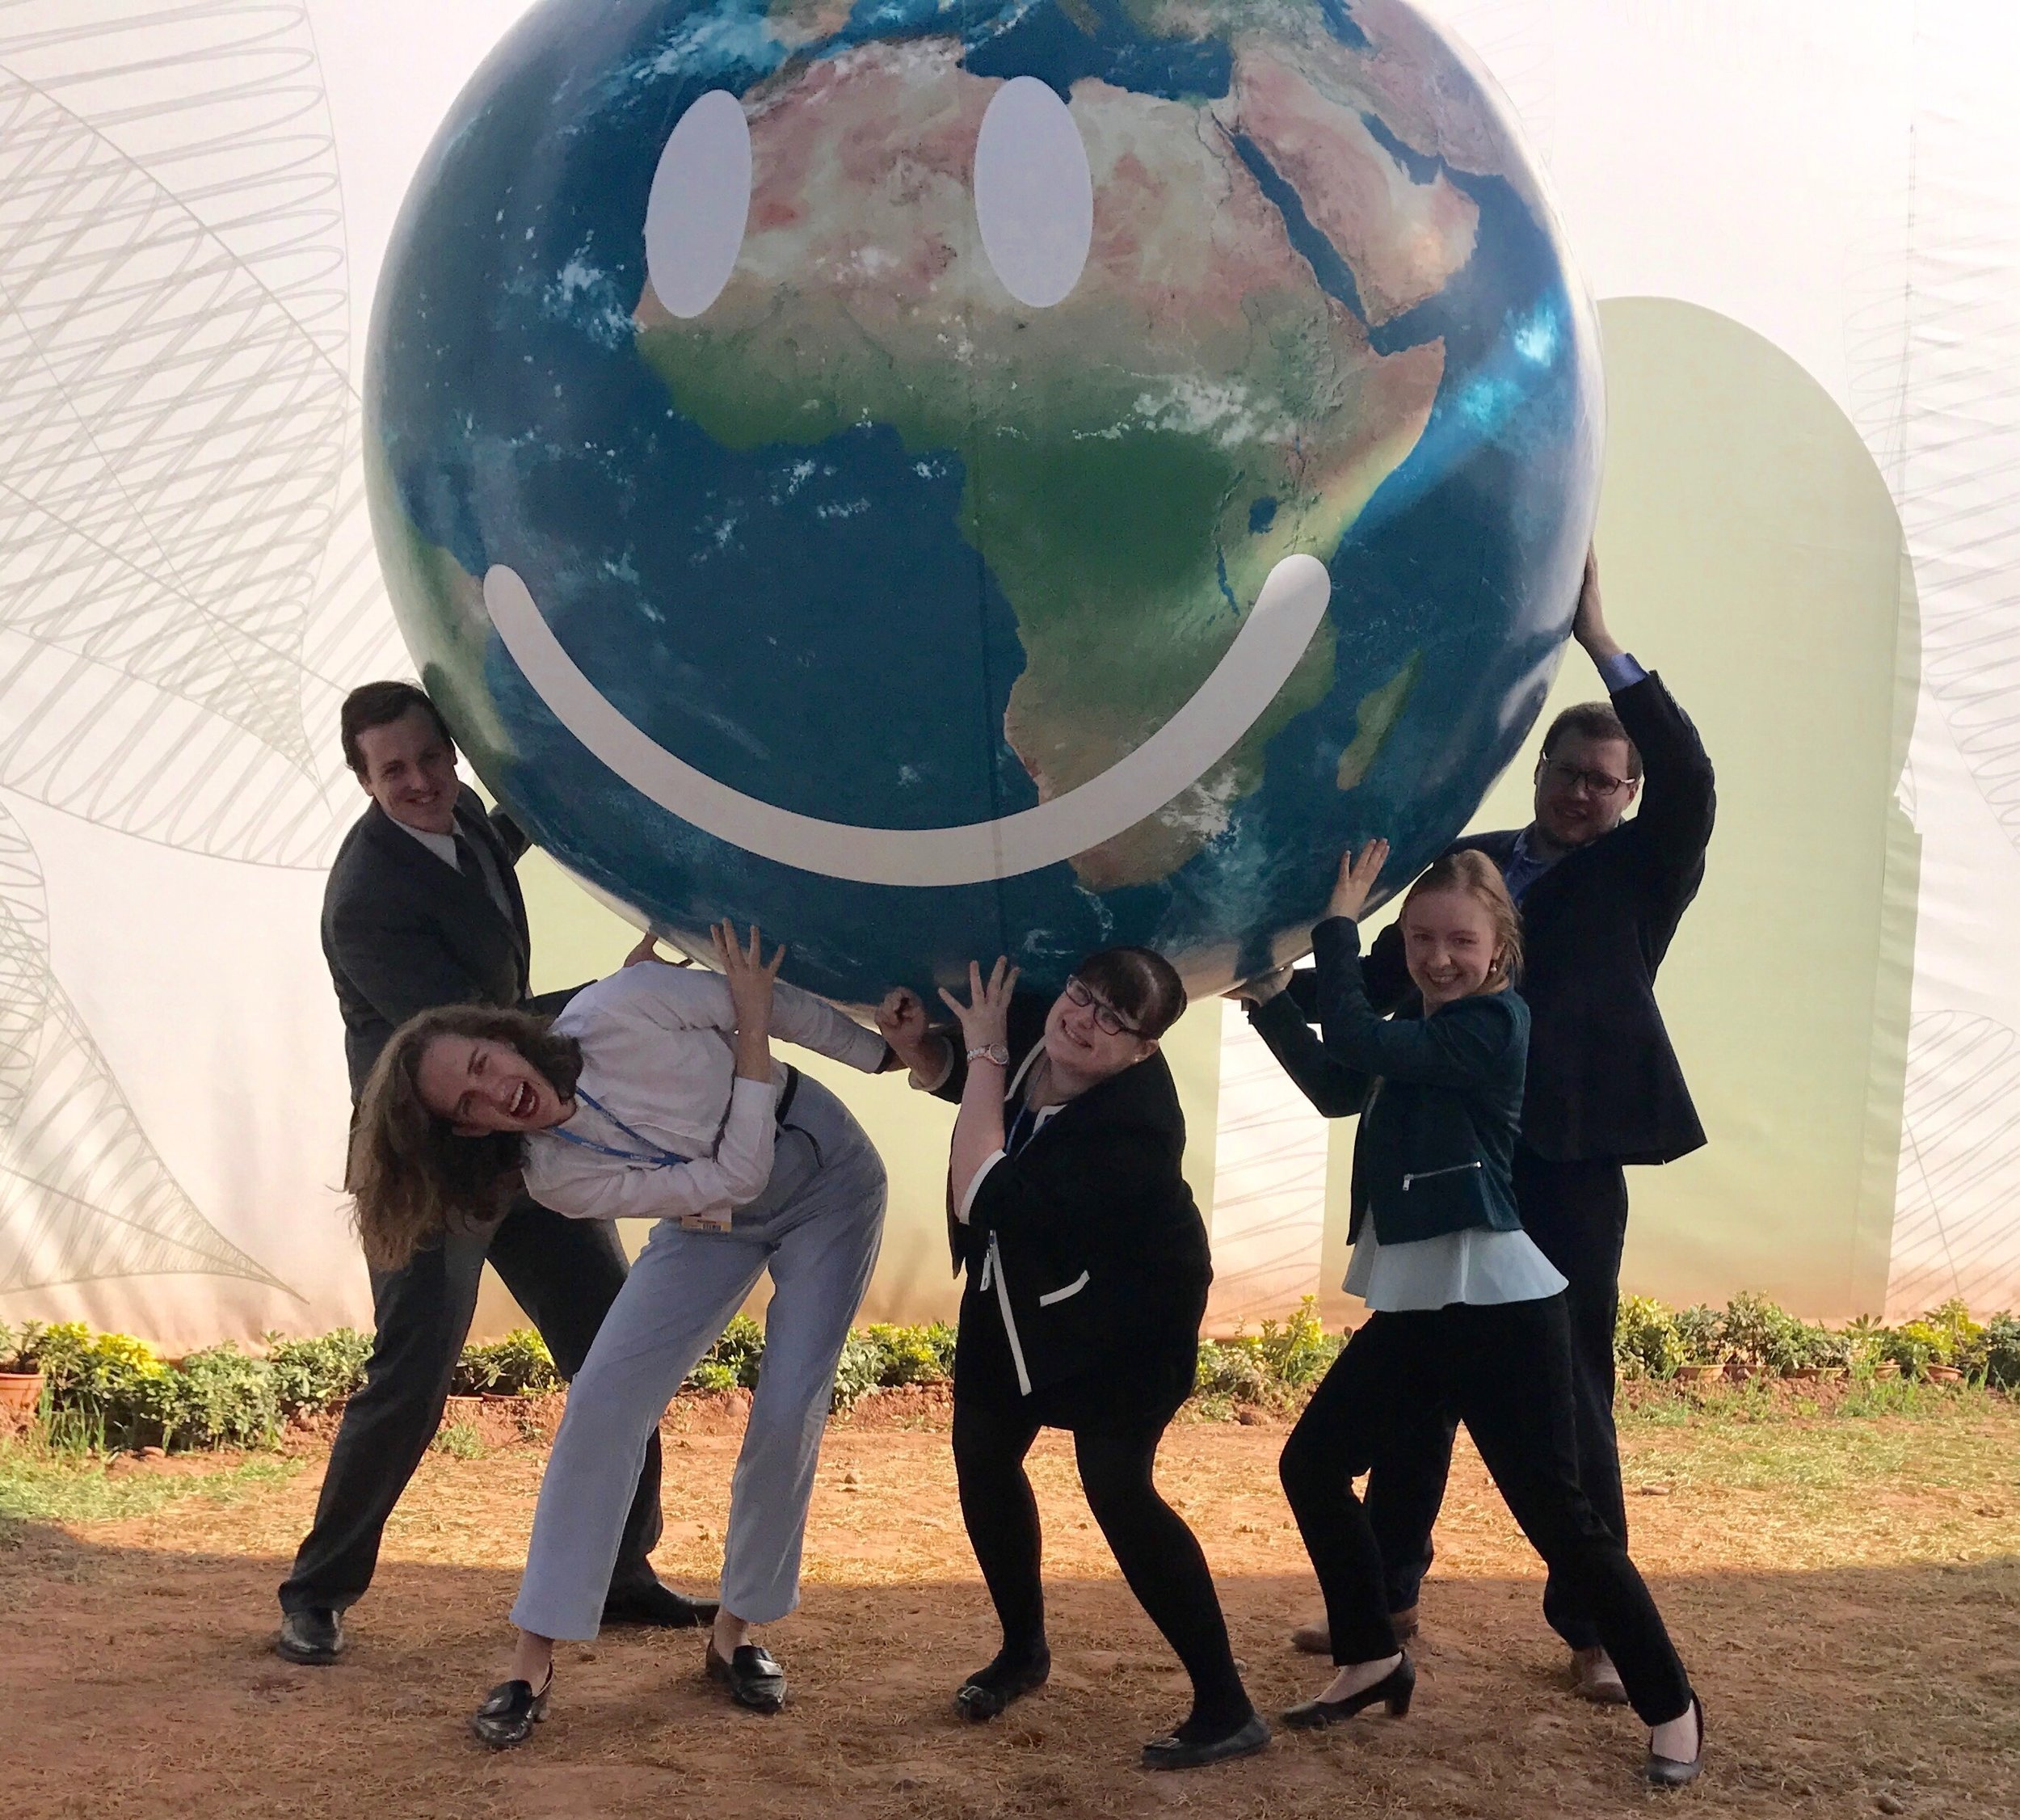 Global Voices COP22 Delegates with the Big Globe copy.jpg